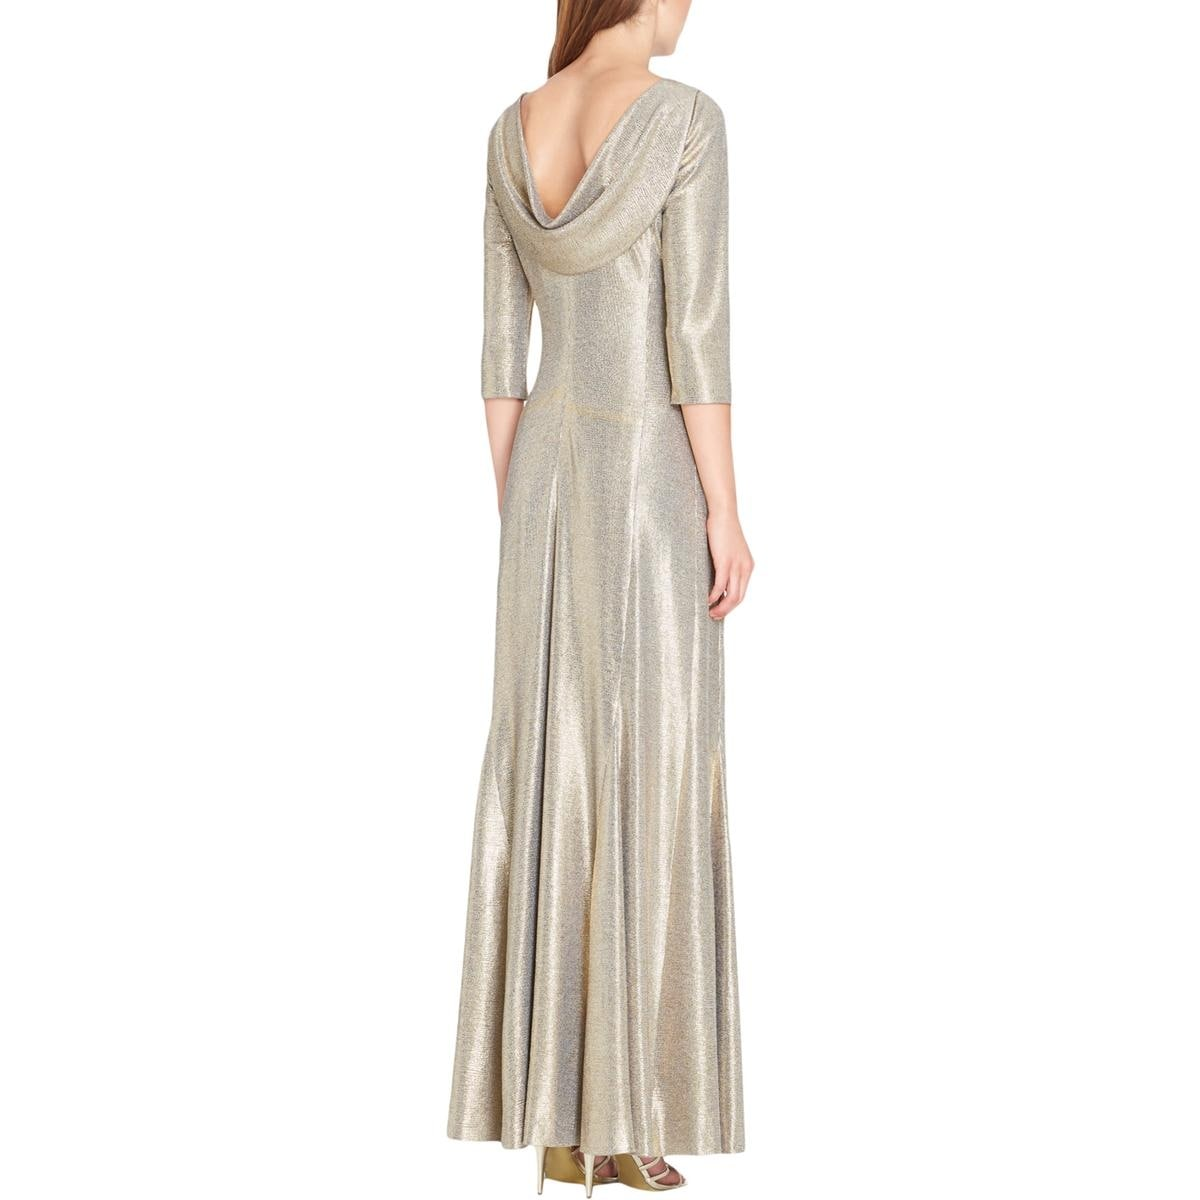 42a165f7cd78b Shop Tahari ASL Womens Evening Dress Metallic Special Occasion - Free  Shipping On Orders Over $45 - Overstock - 25723117